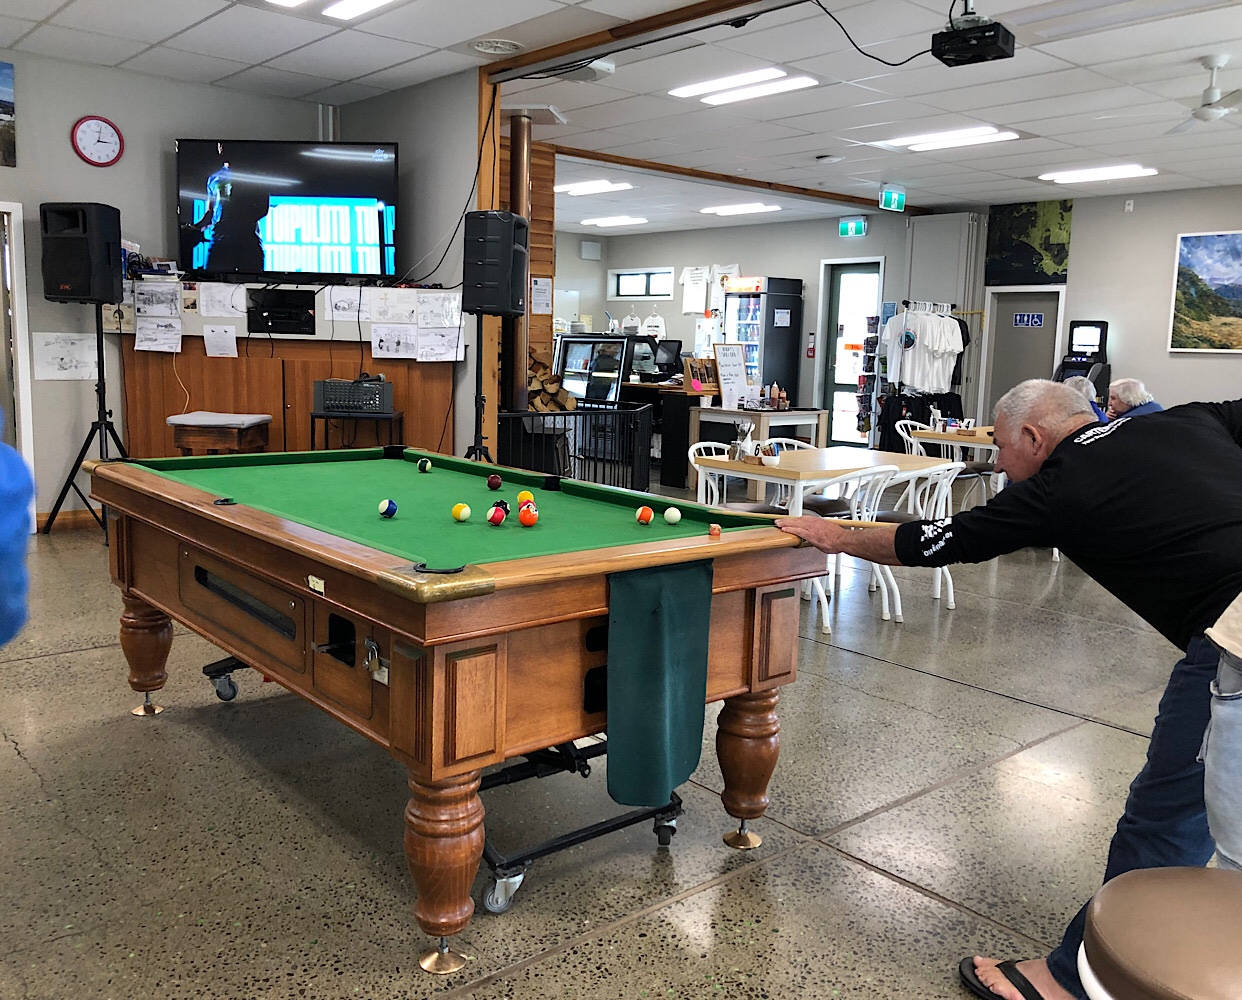 Base Camp pool competition Sunday 21st March 2021